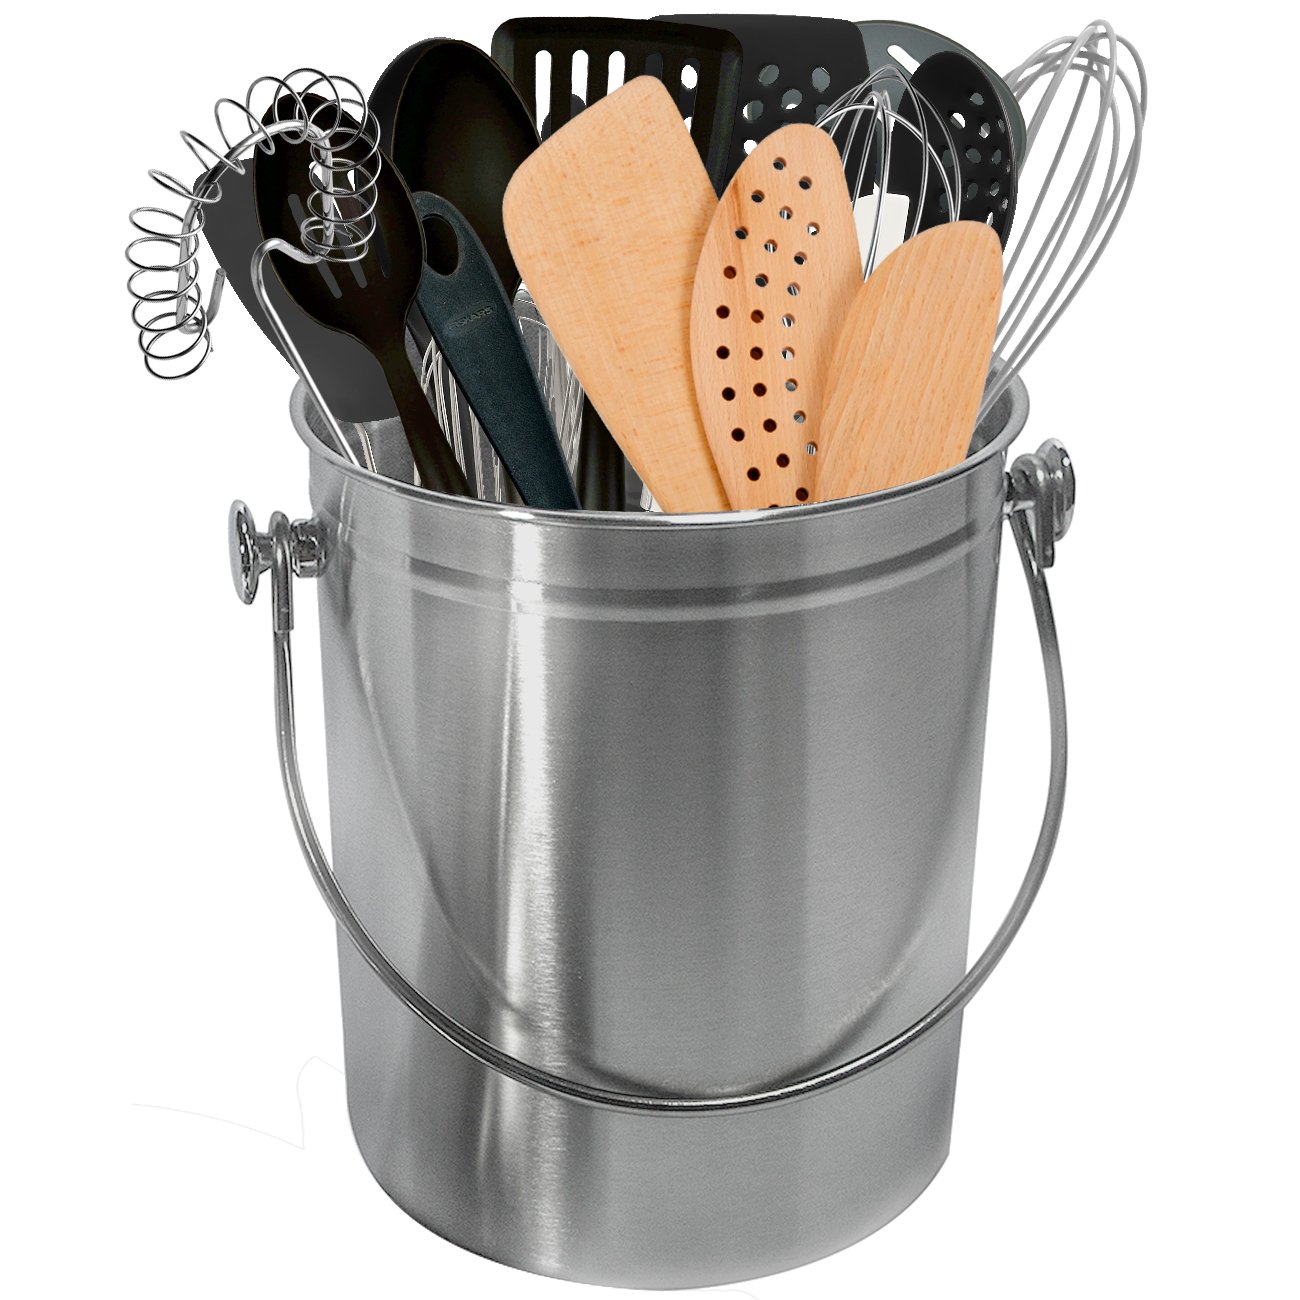 Sorbus Utensil Holder Caddy Crock to Organize Kitchen Tools - Great For Kitchen Accessories and Multi-Purpose – 1 Gallon Capacity (Copper) UTN-BIN-CPA